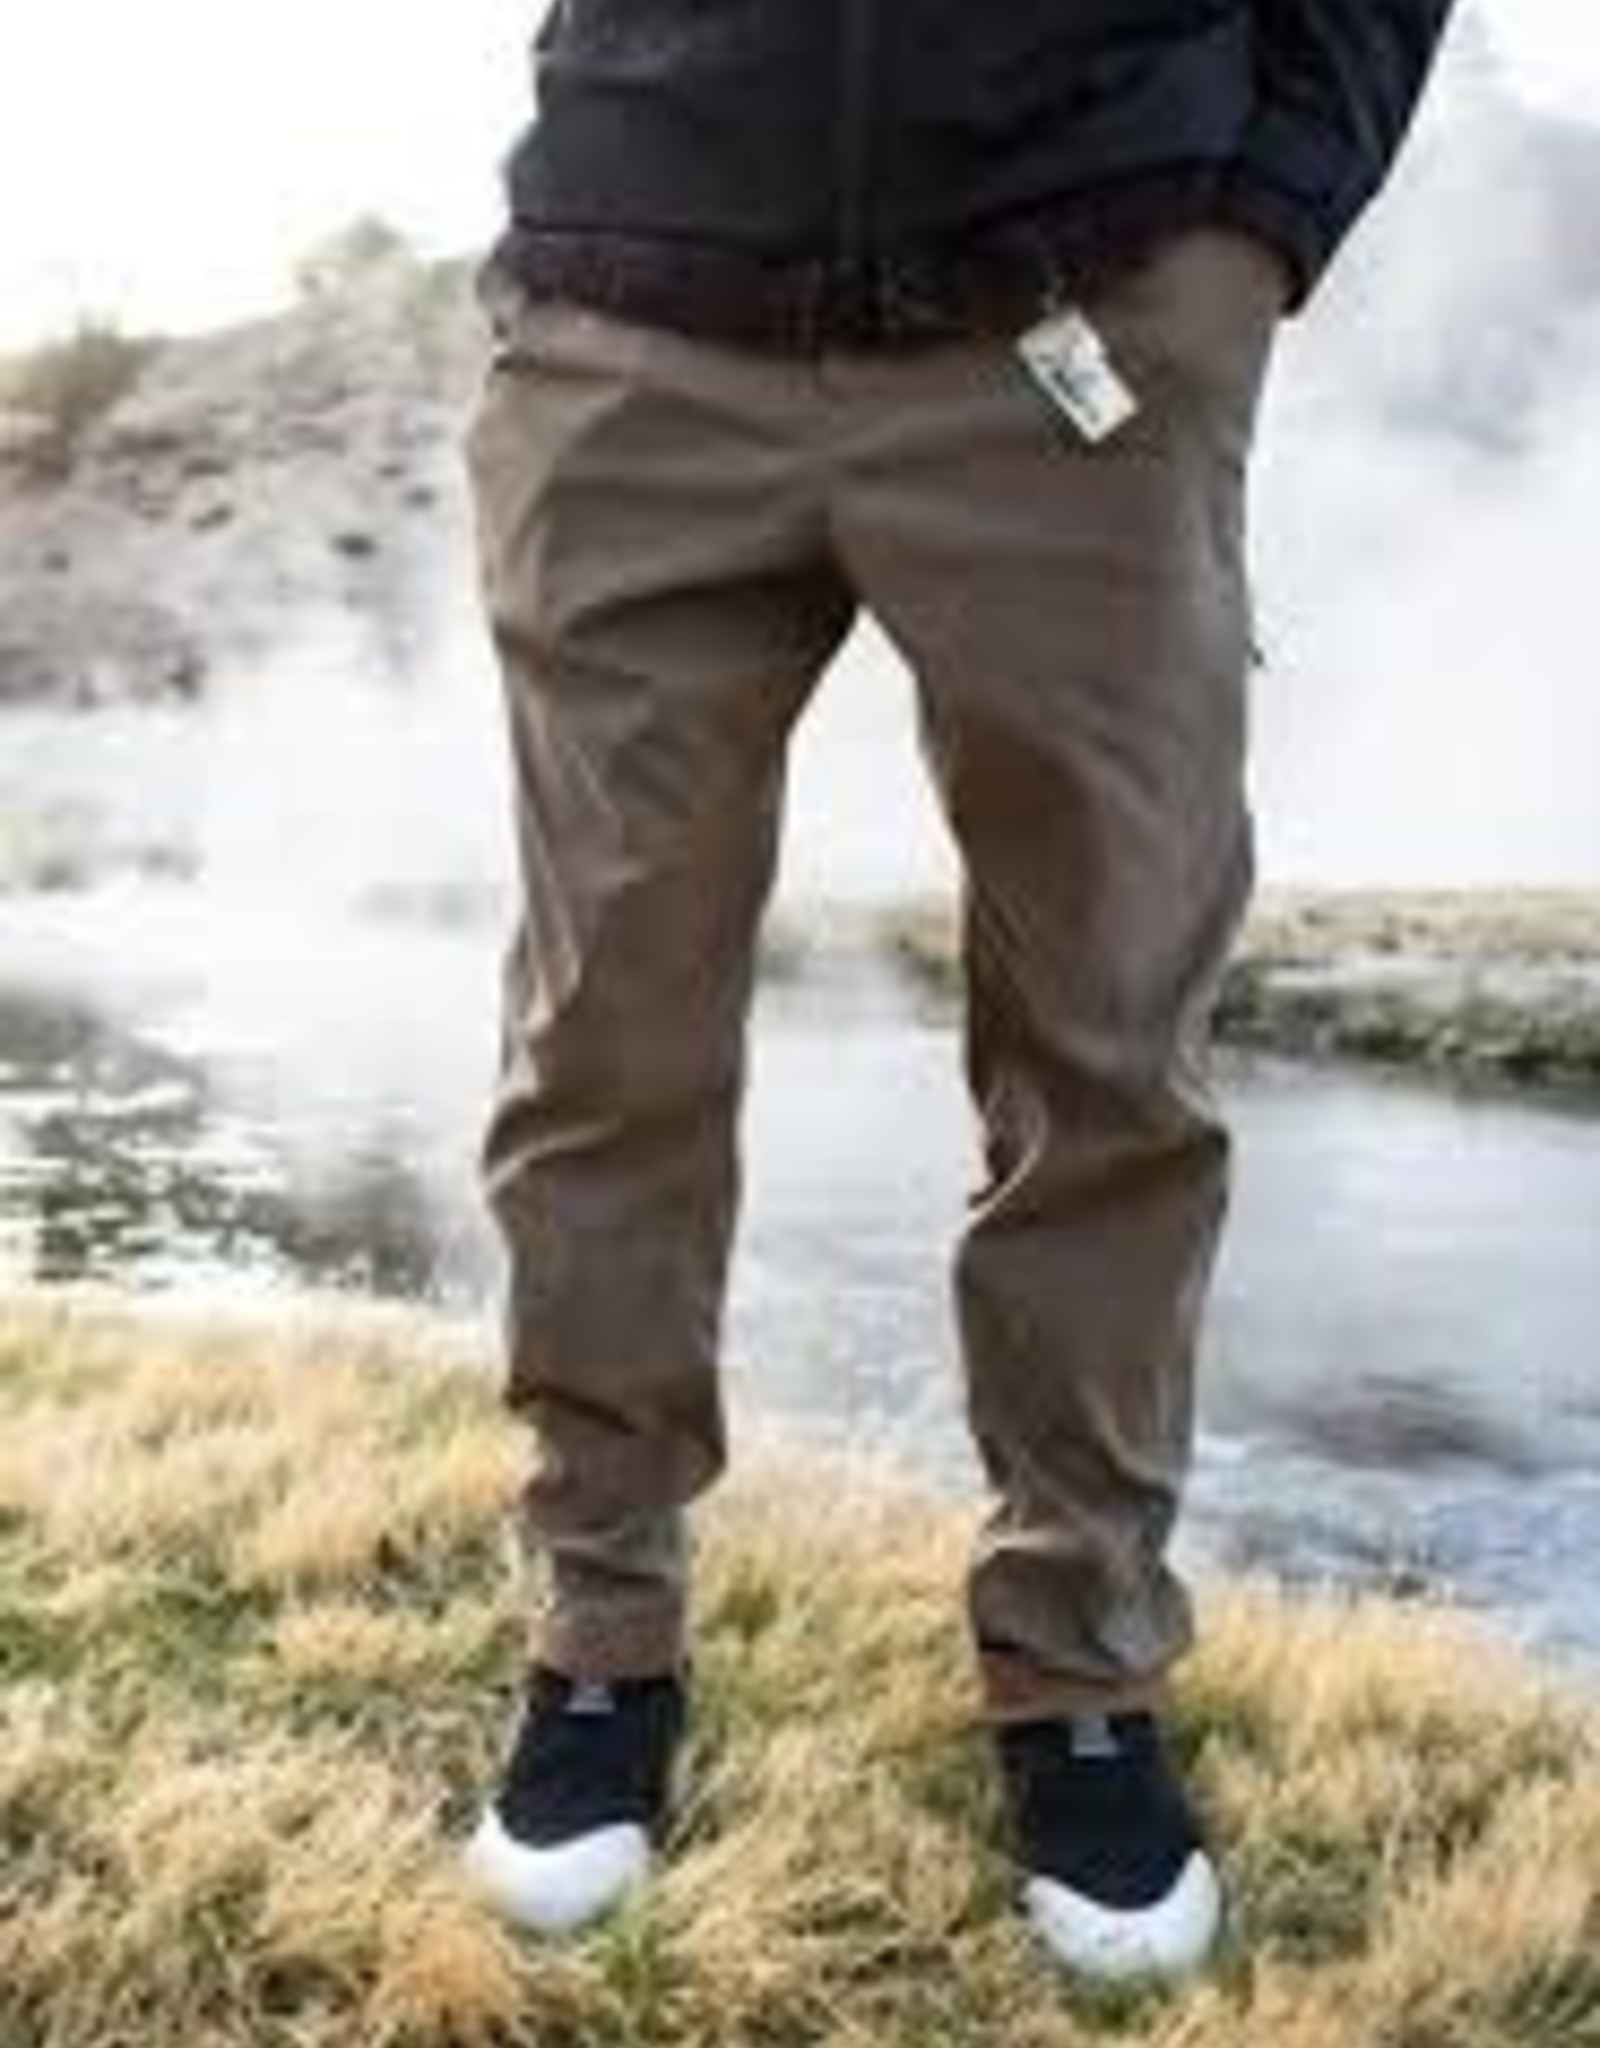 686 686 EVERYWHERE PANT - SLIM FIT TABACCO